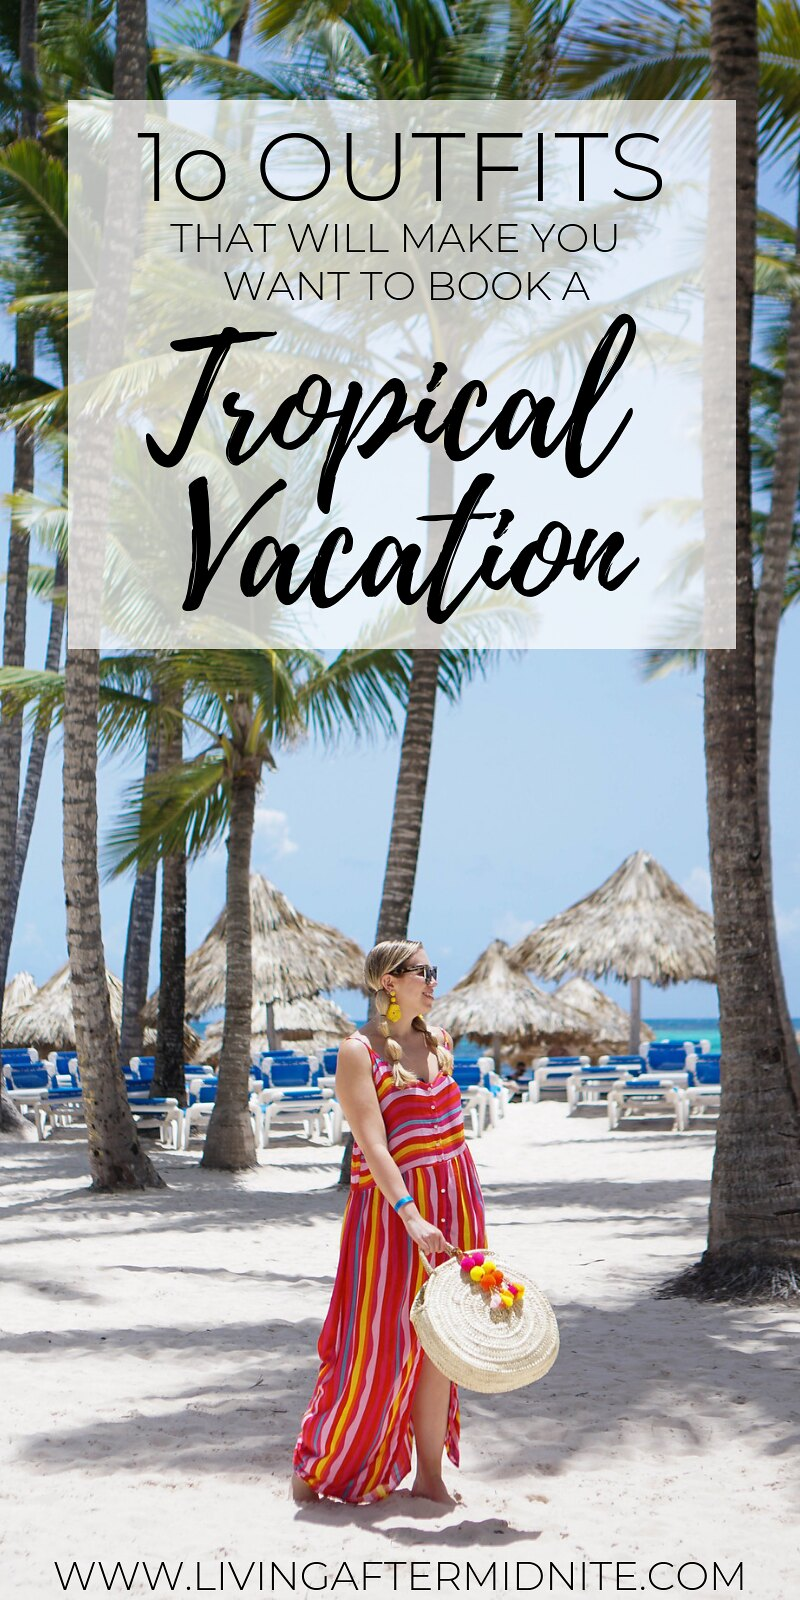 Ten Outfits That Will Make You Want to Book a Tropical Vacation | Summer Vacation Outfits | What to Wear on Vacation | What to Pack for Punta Cana